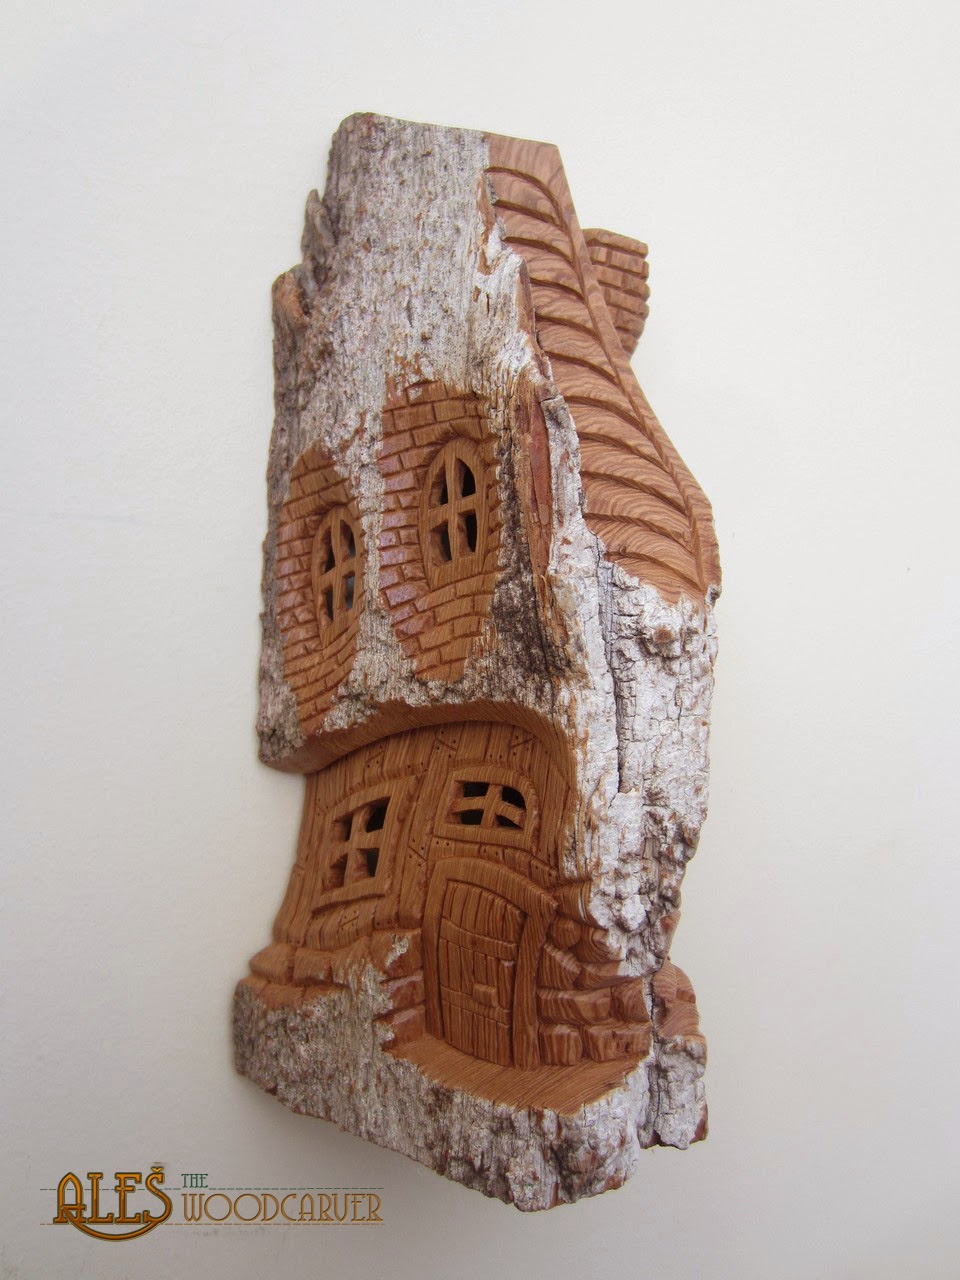 Ales the woodcarver whimsical houses from march